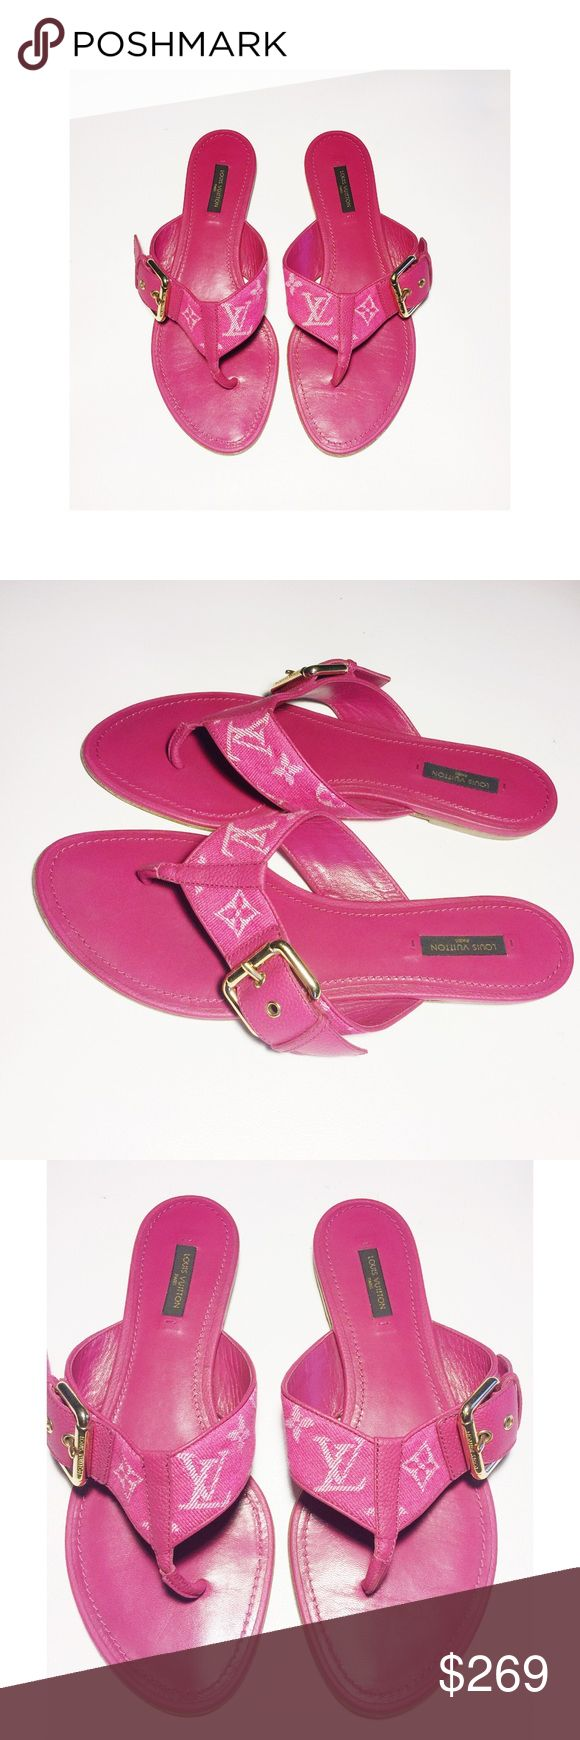 Authentic Louis Vuitton Monogram Pink Thong Sandal These authentic Louis Vuitton Monogram sandals are great for everyday use. Simple and luxurious. Gently used. Size 40. Leather insoles, lining and bottom soles. Made in Italy. Date code CL-0123. Louis Vuitton Shoes Sandals